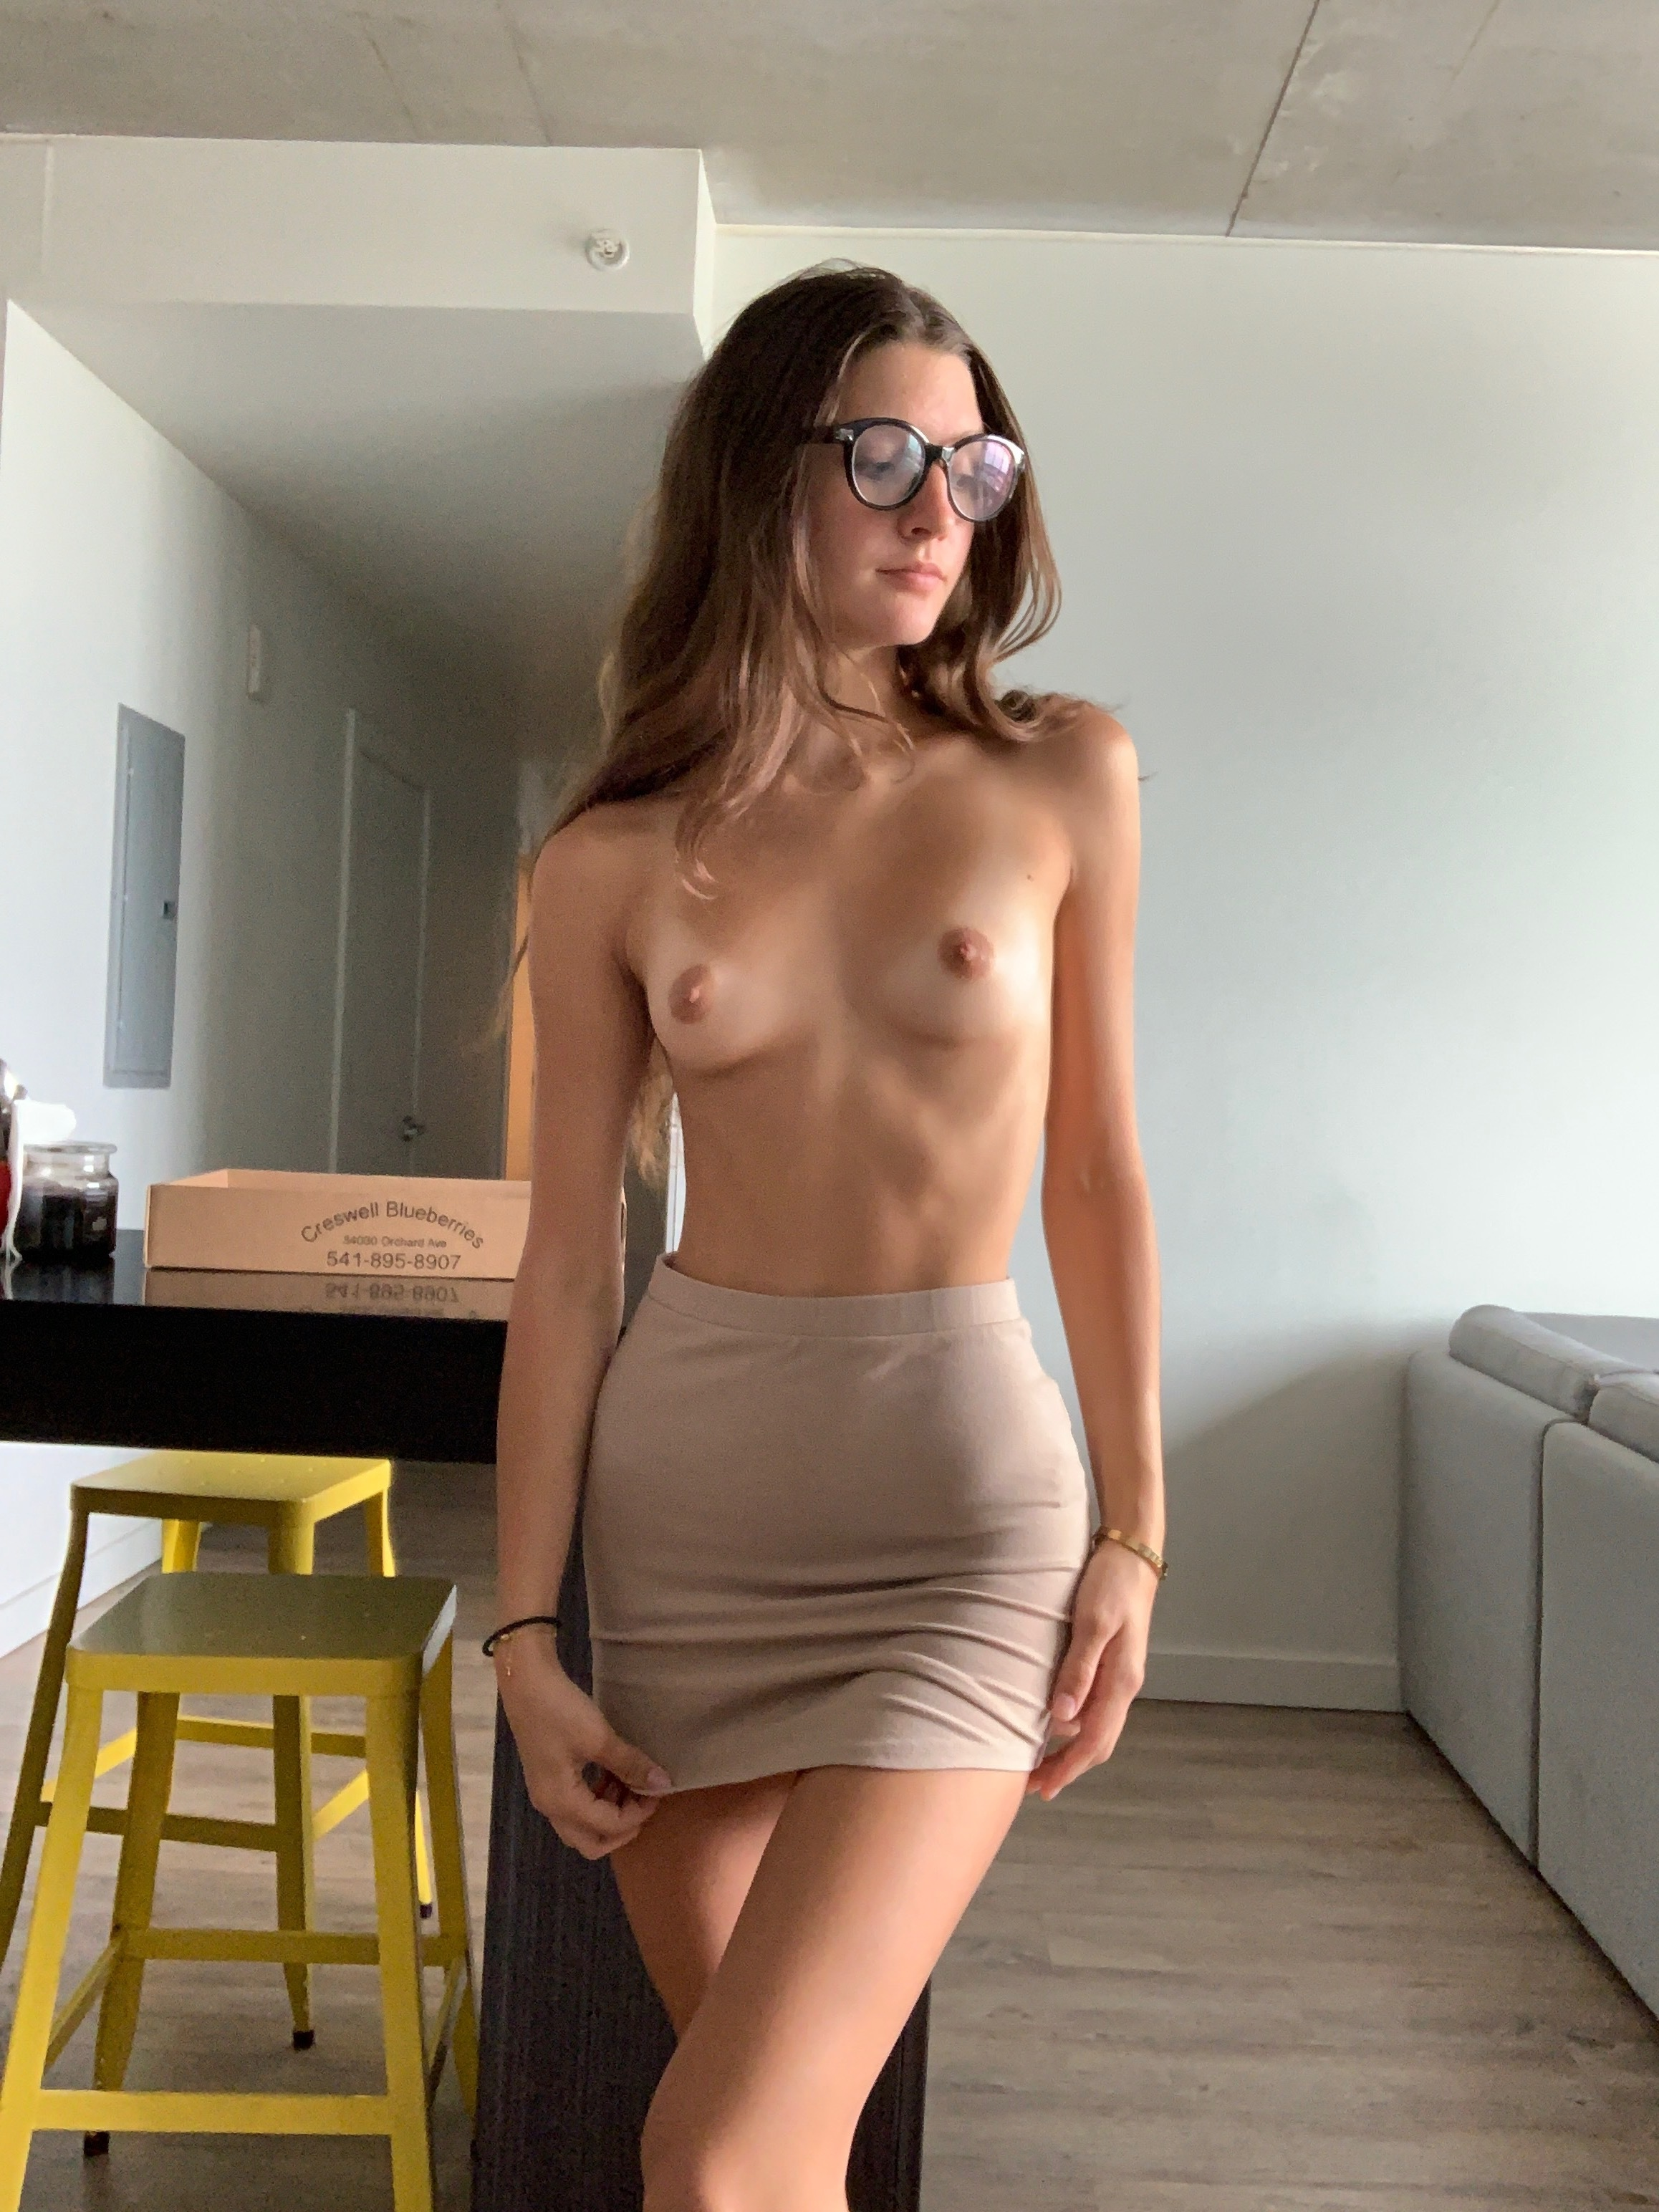 paula rove free porn tube watch download and cum paula Petite Teen Young Brunette Tits SmallTits Pussy Naked Hot Sexy Submissive Innocent Slutty Posing Tie